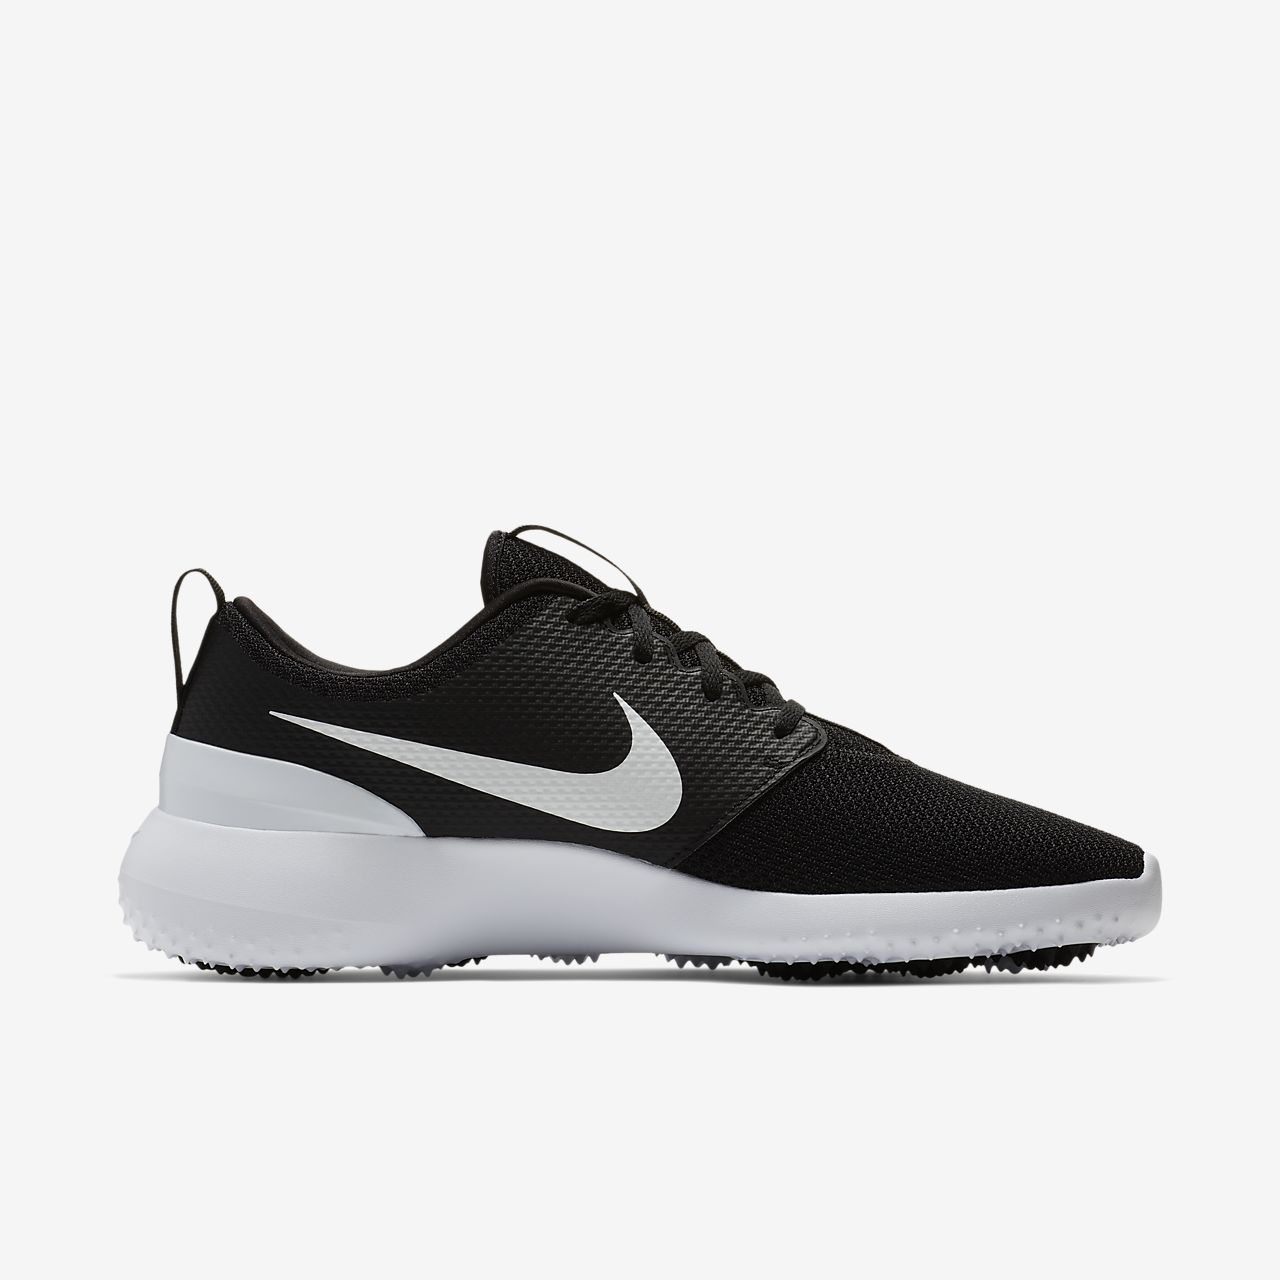 d5992c46b490 Nike Roshe G Men s Golf Shoe. Nike.com